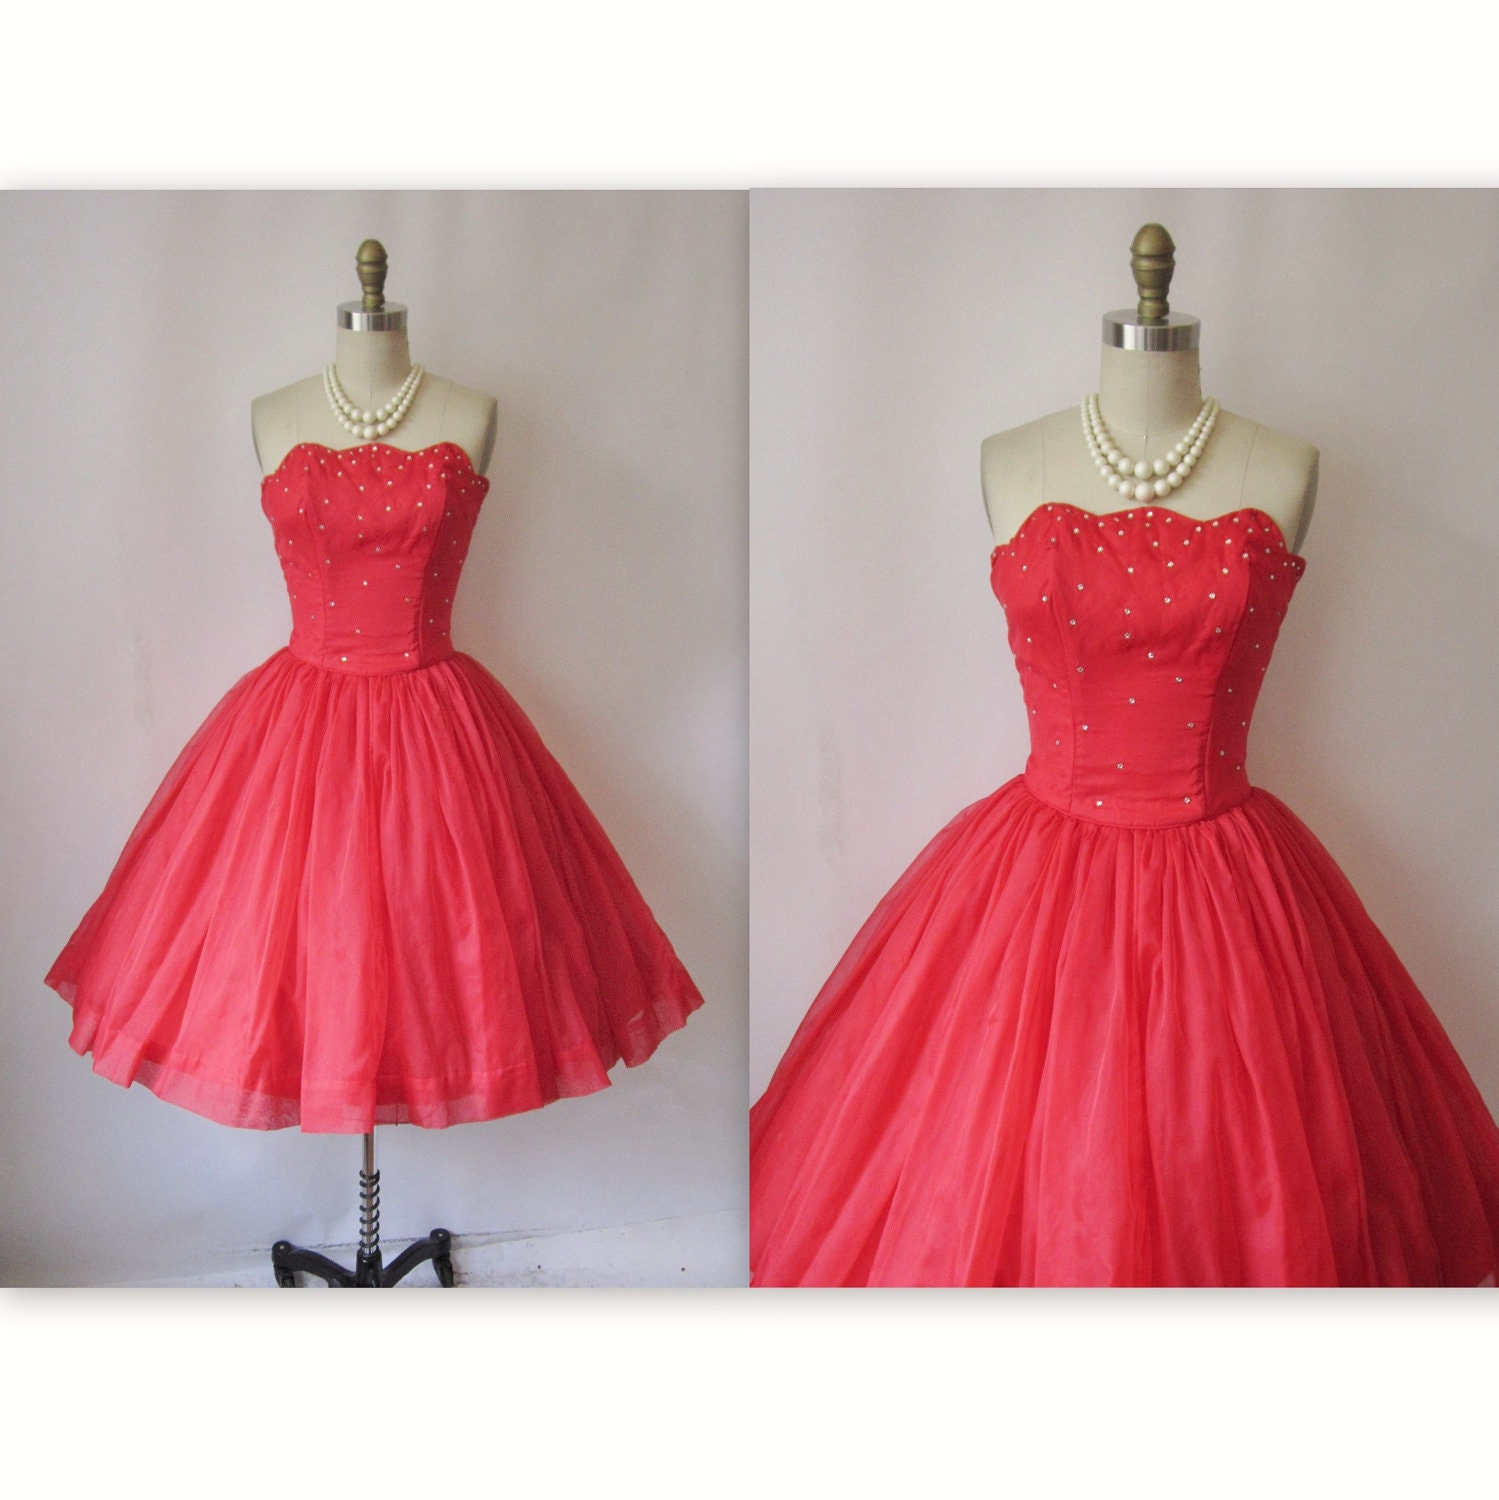 1950 s Red Dress Strapless Chiffon Prom Wedding Party